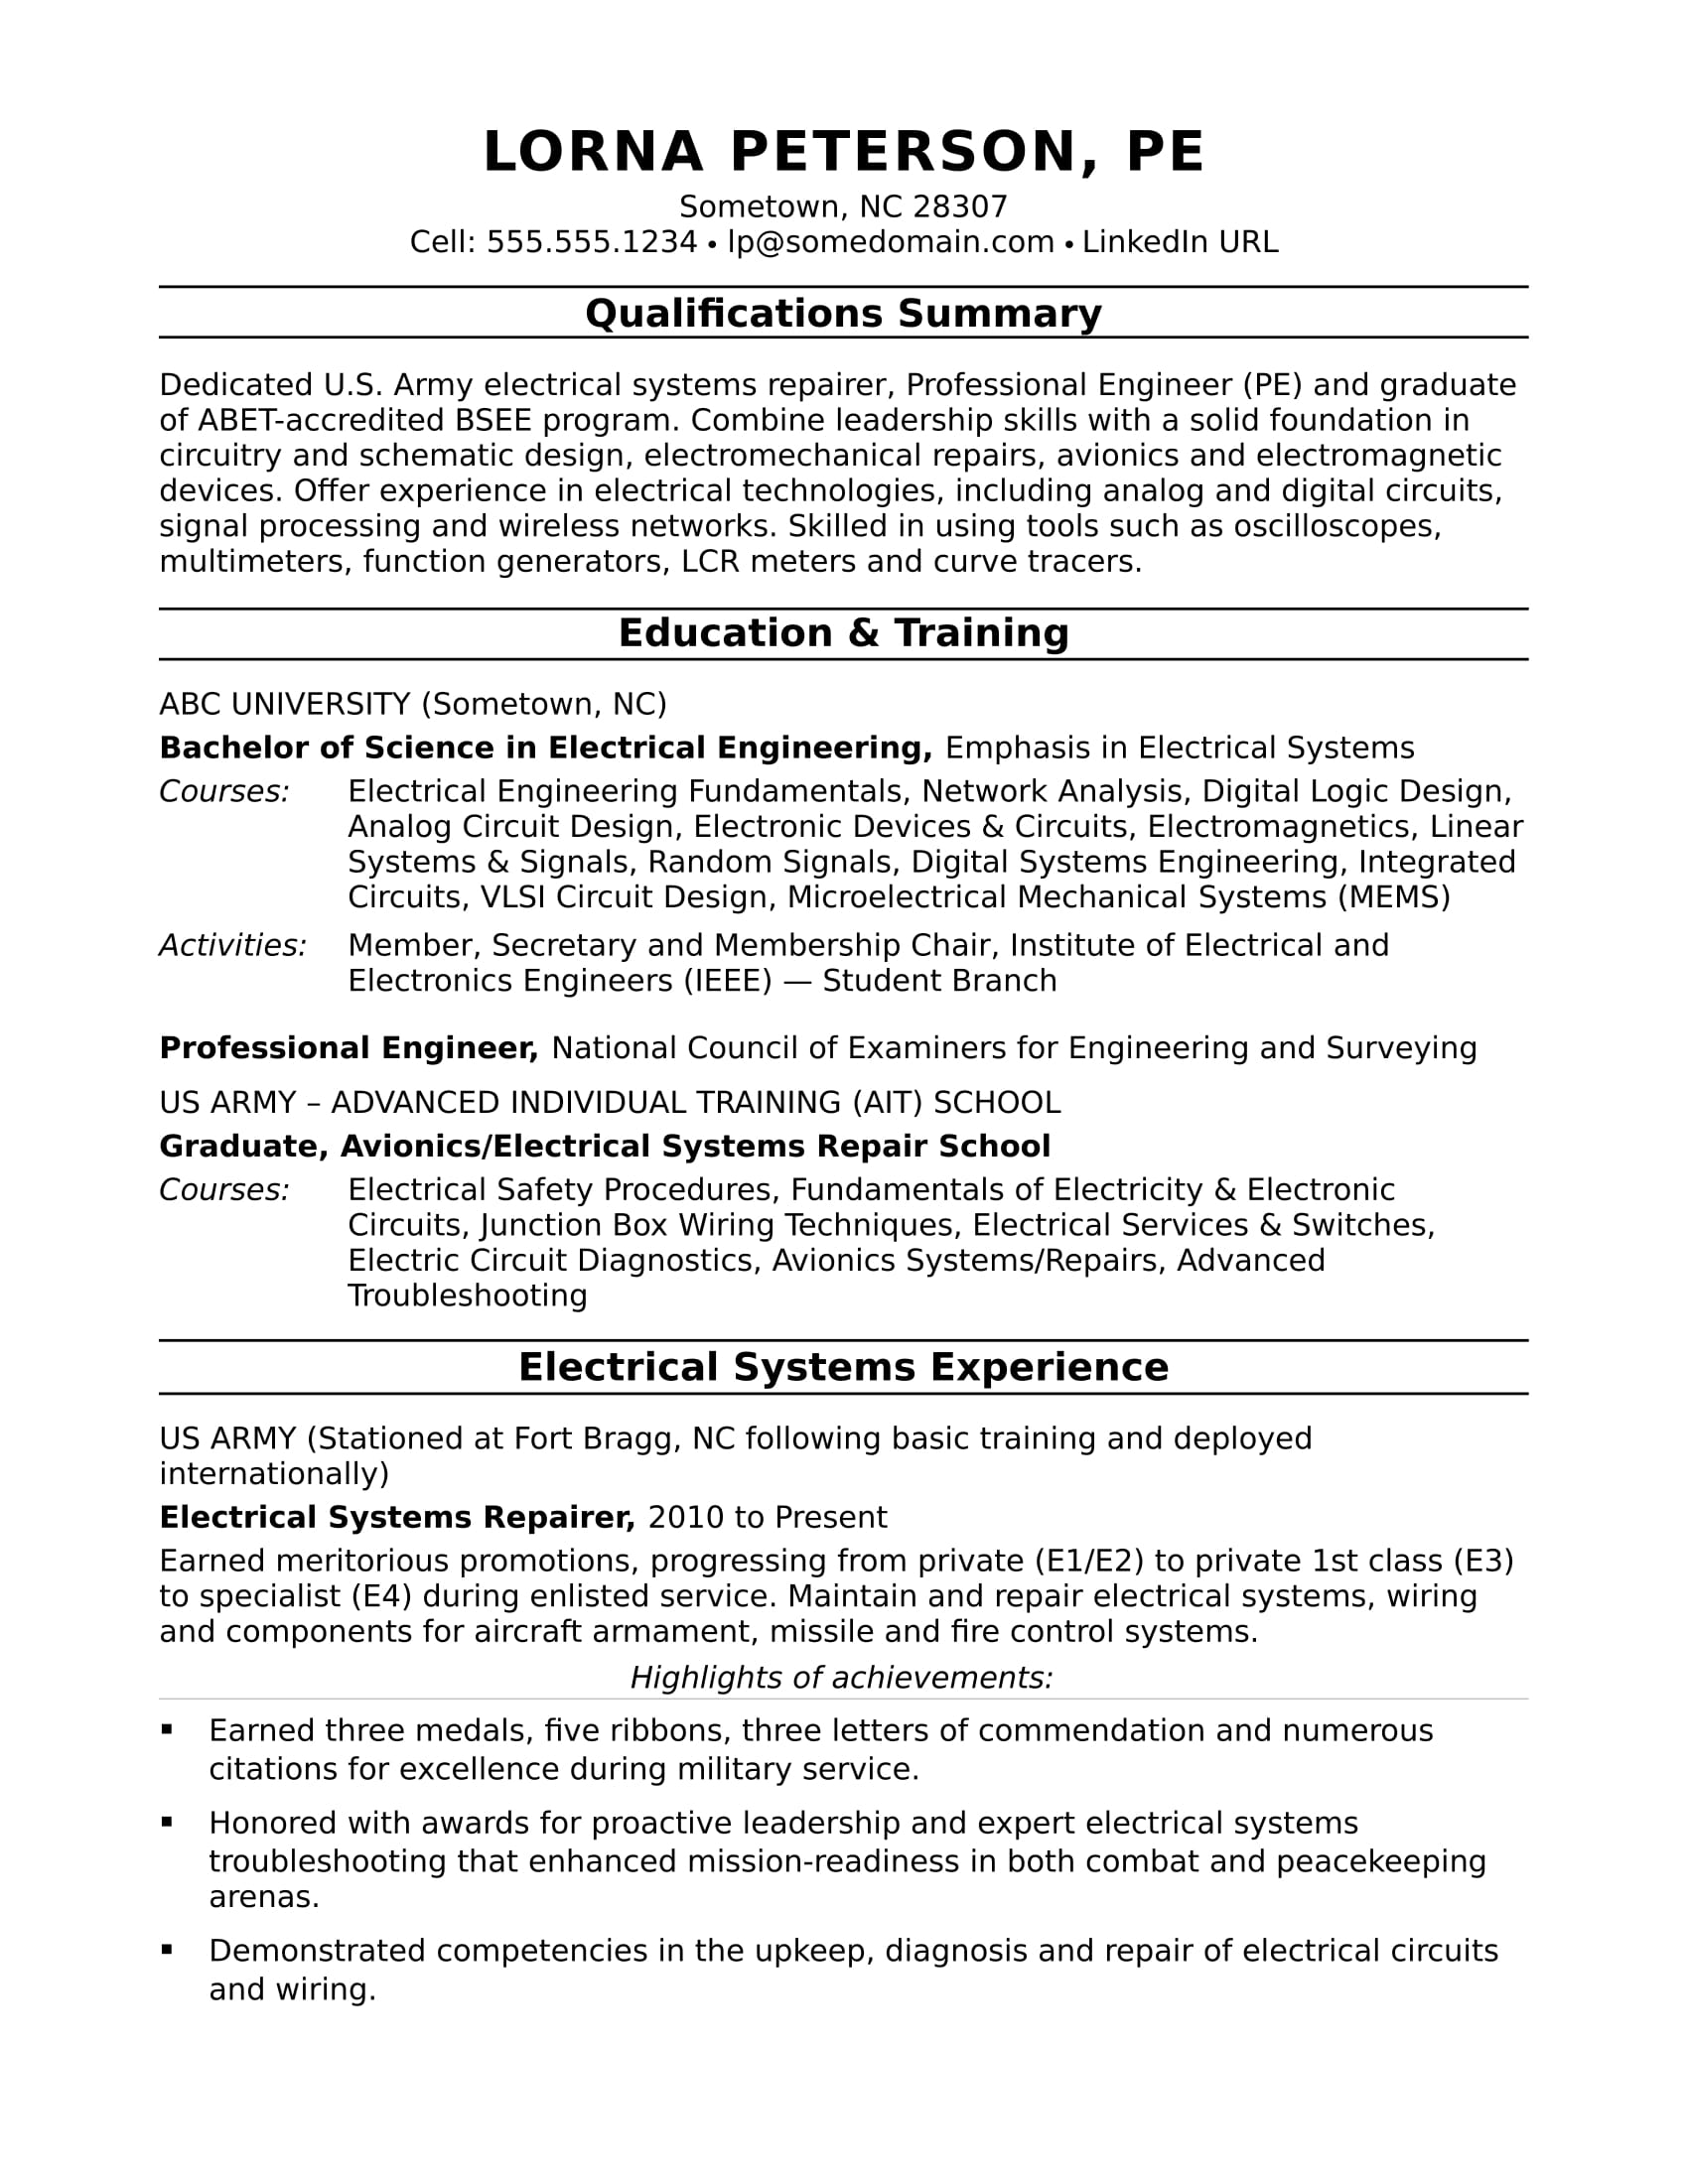 sample resume for midlevel electrical engineer monster professional summary engineering Resume Professional Summary For Engineering Resume